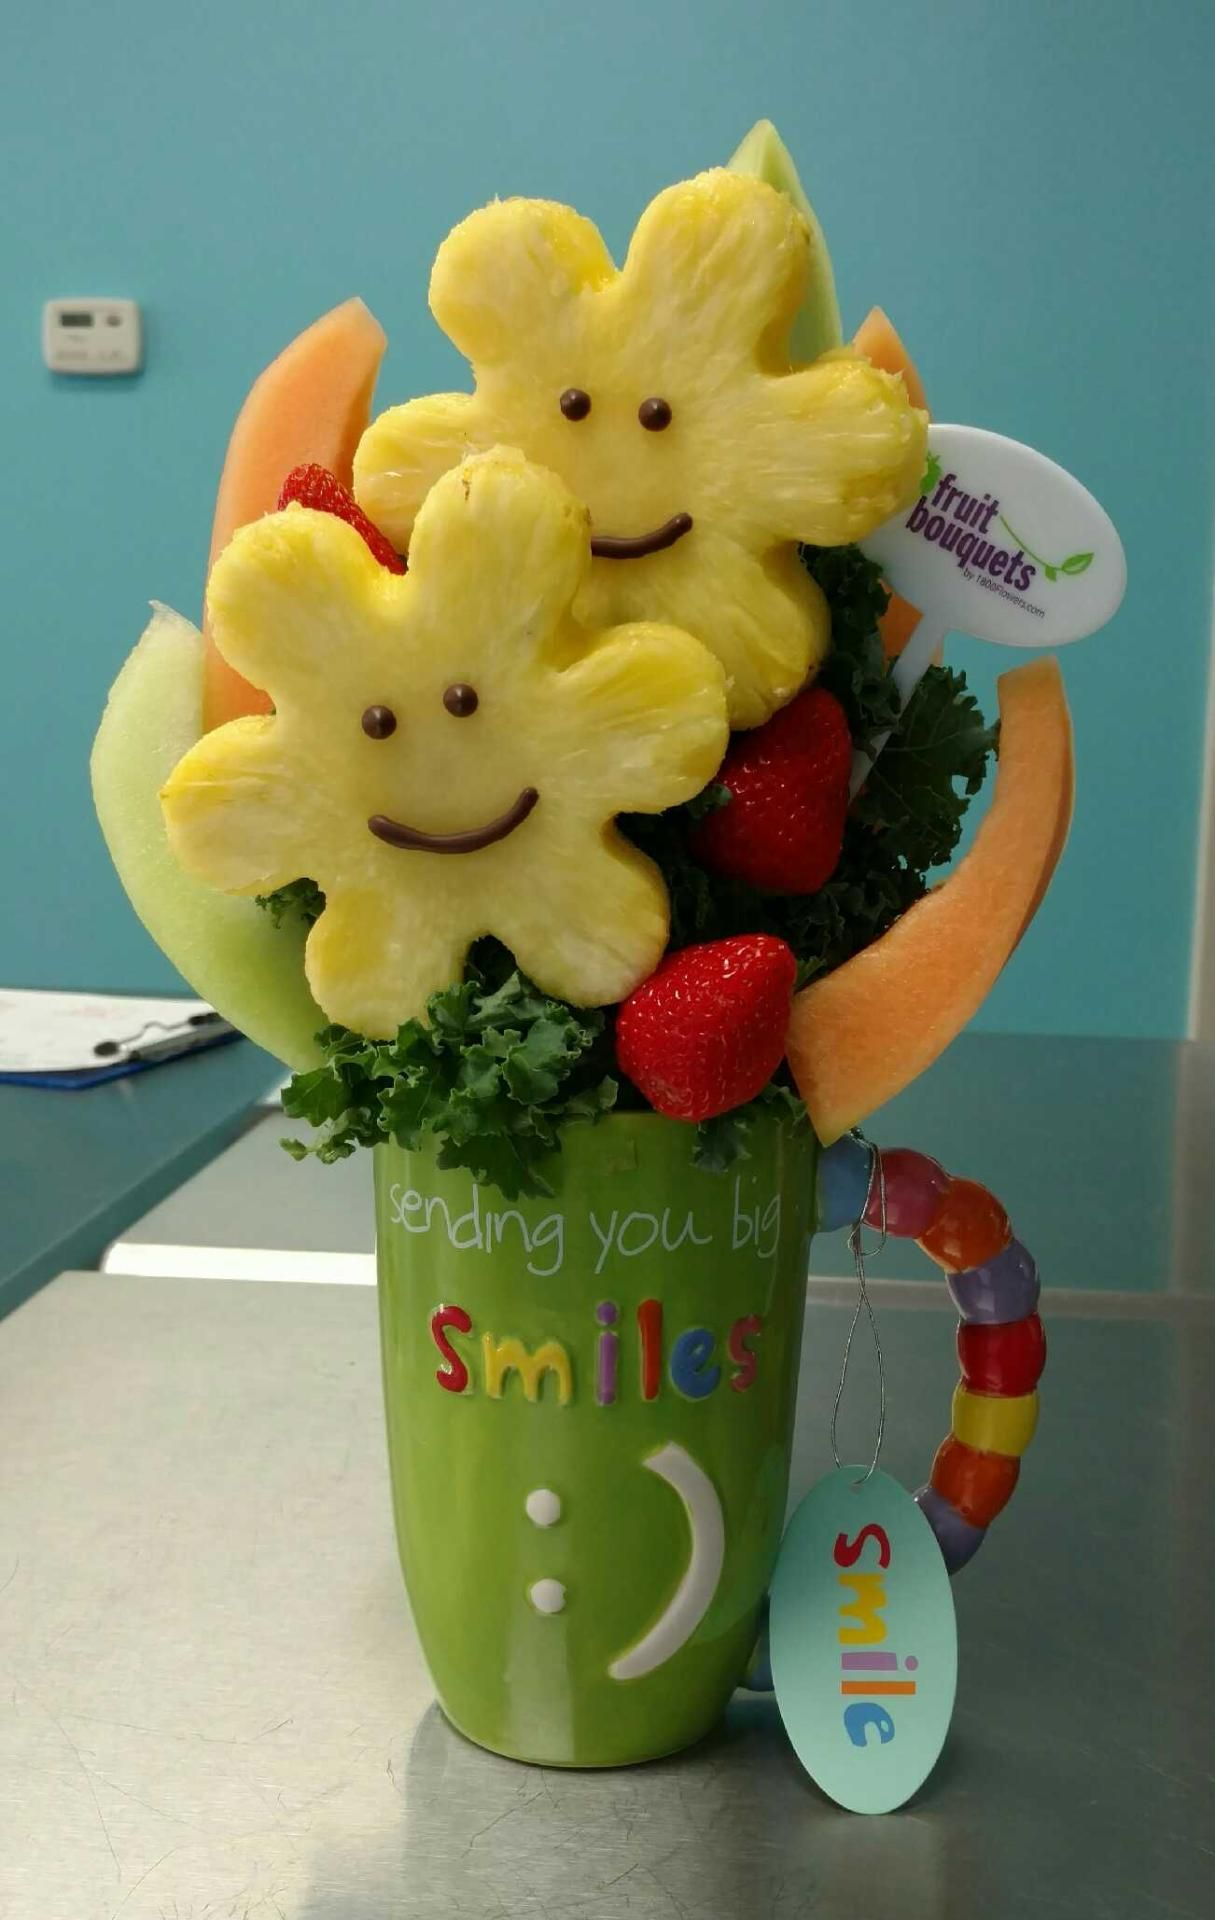 Mugable Sweet and Smiley - $49.99 | Fruit Bouquet | Pinterest | Smiley